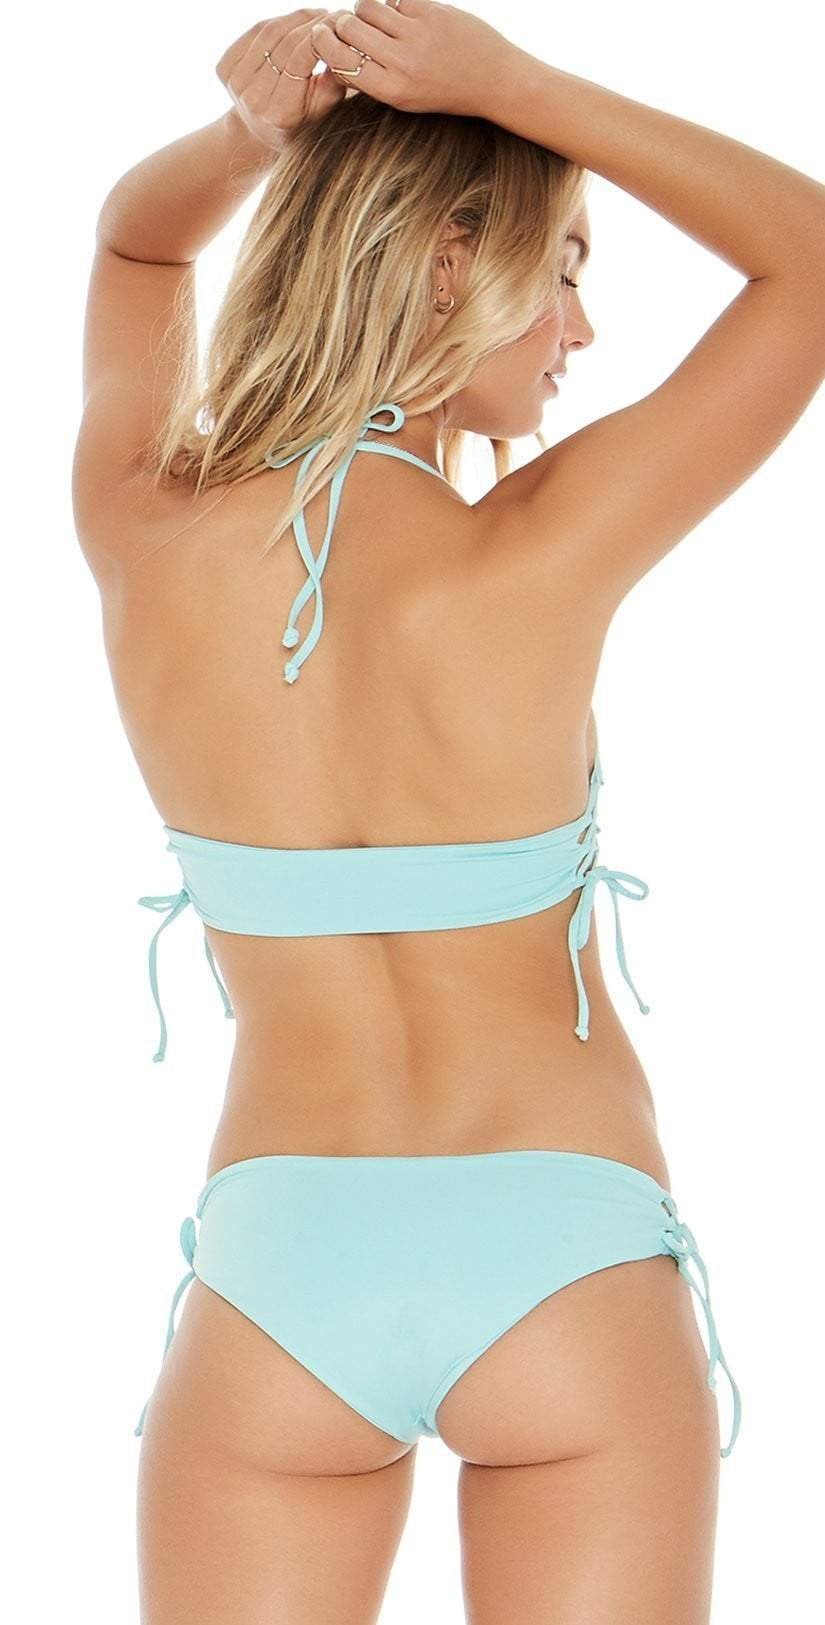 L Space Ella Bottom In Light Turquoise LSEAC18-LIT back view